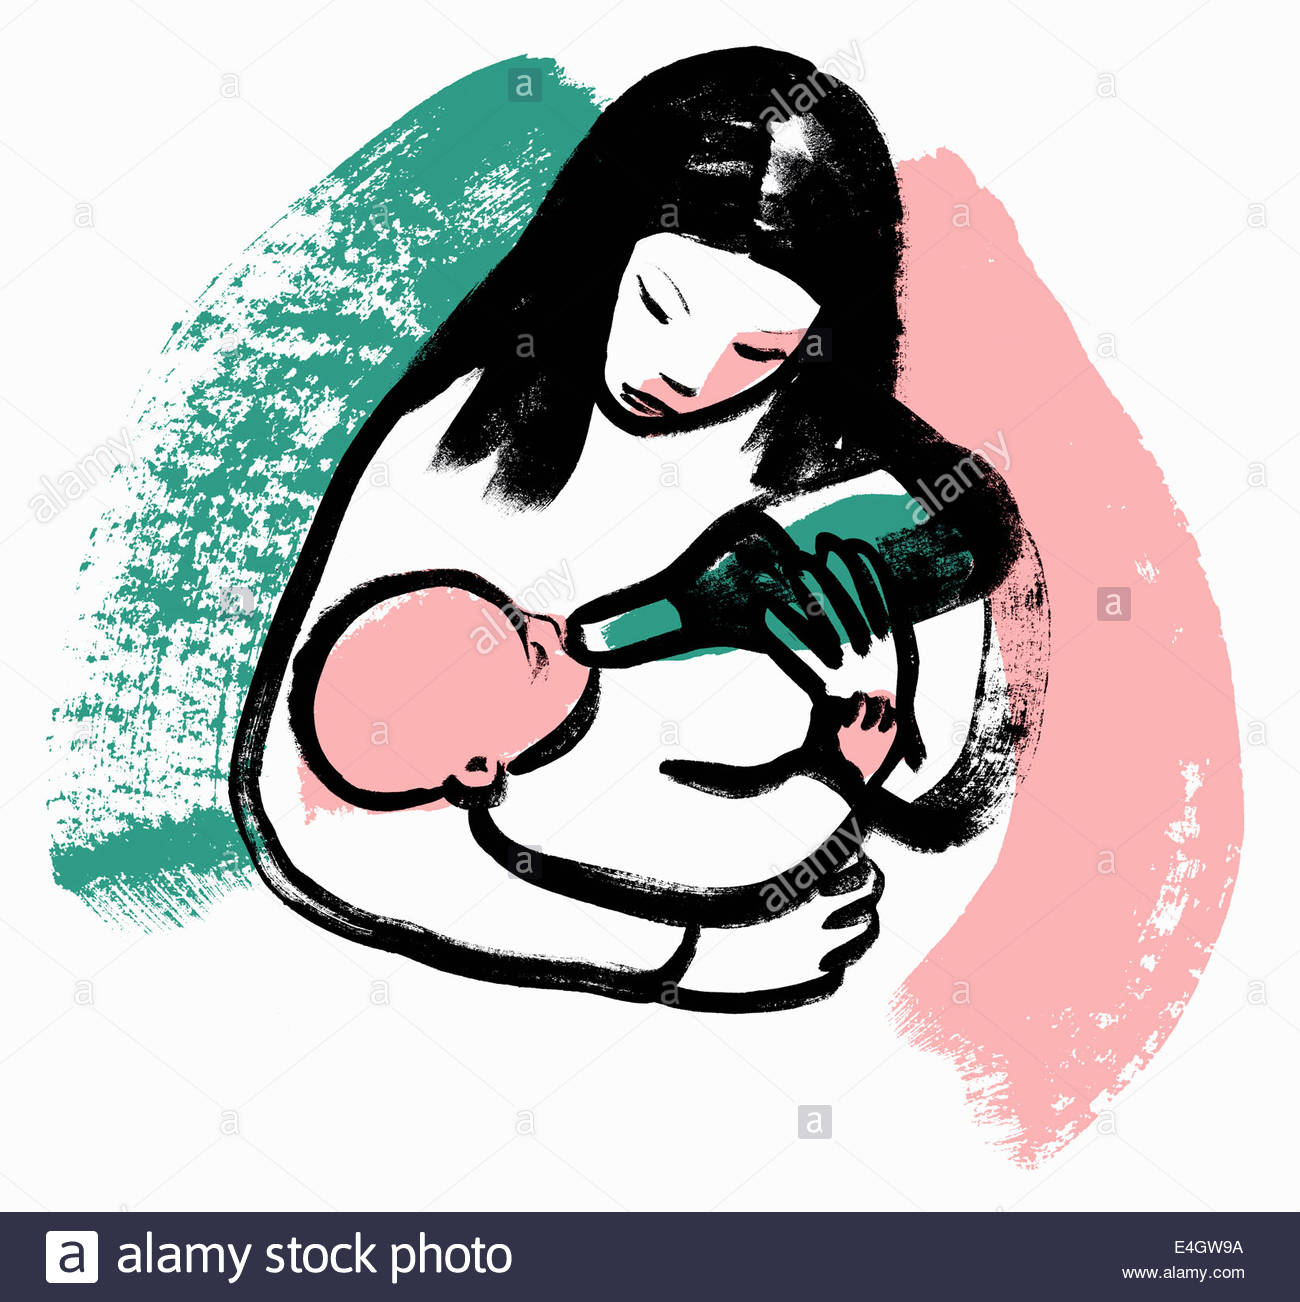 Woman feeding baby from wine bottle - Stock Image